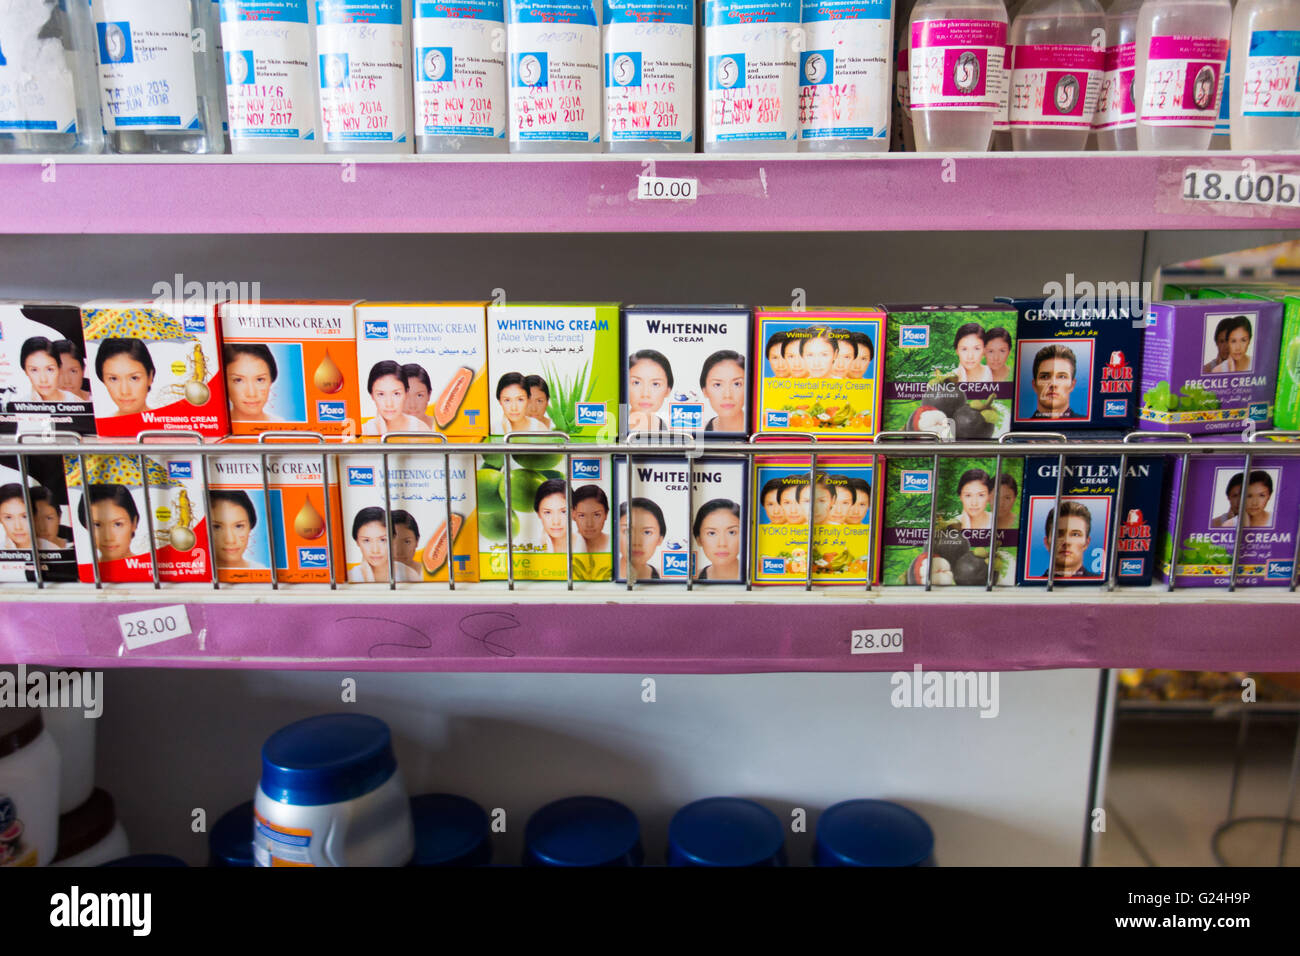 A variety of skin-lightening creams for sale at a supermarket in Ethiopia - Stock Image